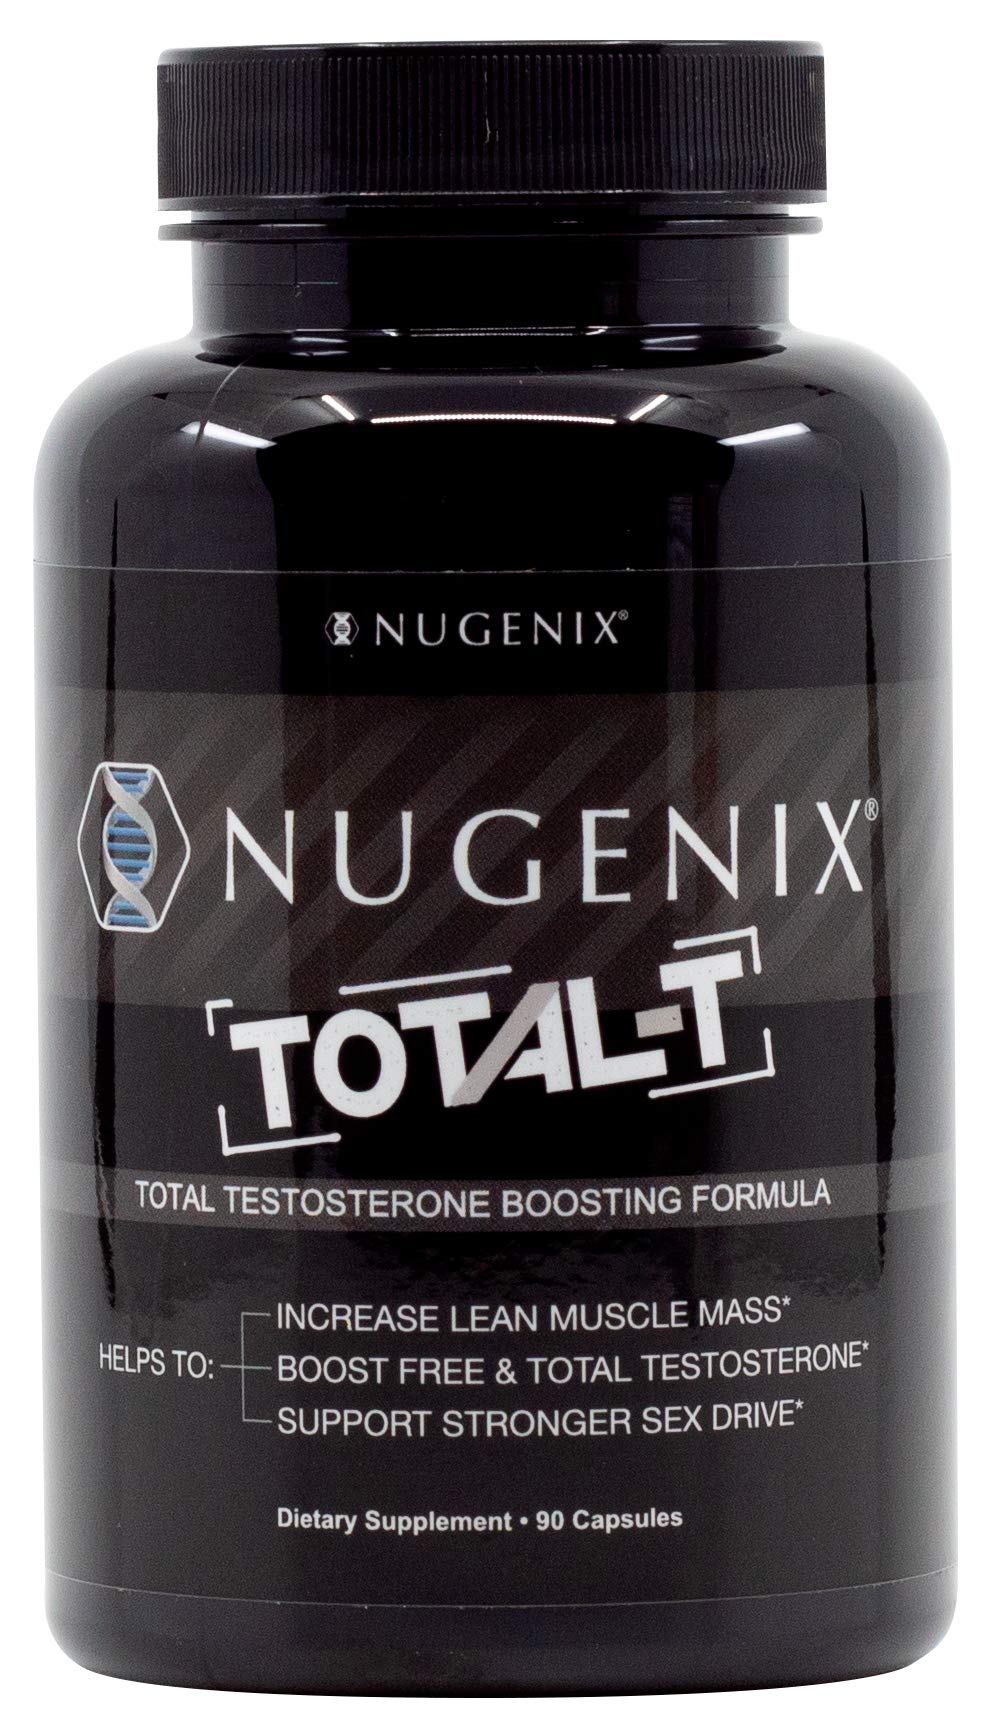 Nugenix Total-T: Men's Total Testosterone Boosting Formula. All New, High Potency, High Bioavailibility Testosterone Boosting Ingredients. Helps with Energy, Muscle, Libido, Stamina, and Drive by Nugenix (Image #2)